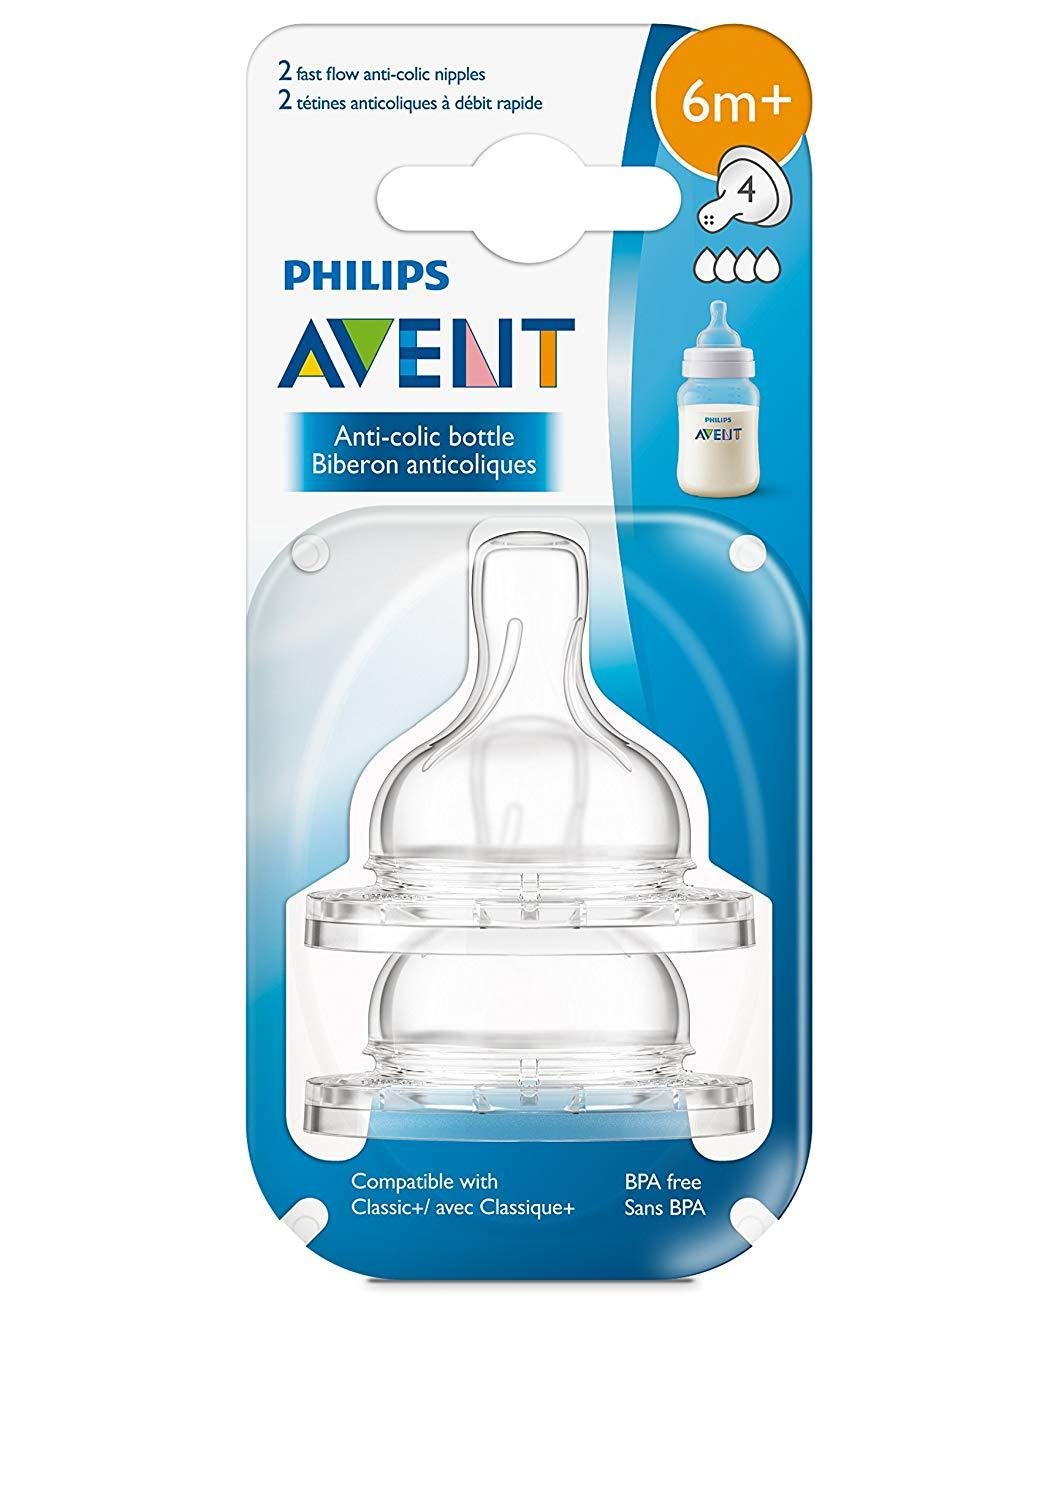 Baby Bottles For Sale Feeding Online Brands Prices Pigeon Bpa Free Set Mini 6m Melimelo Philips Avent Classic Nipples Fast Flow Made In England